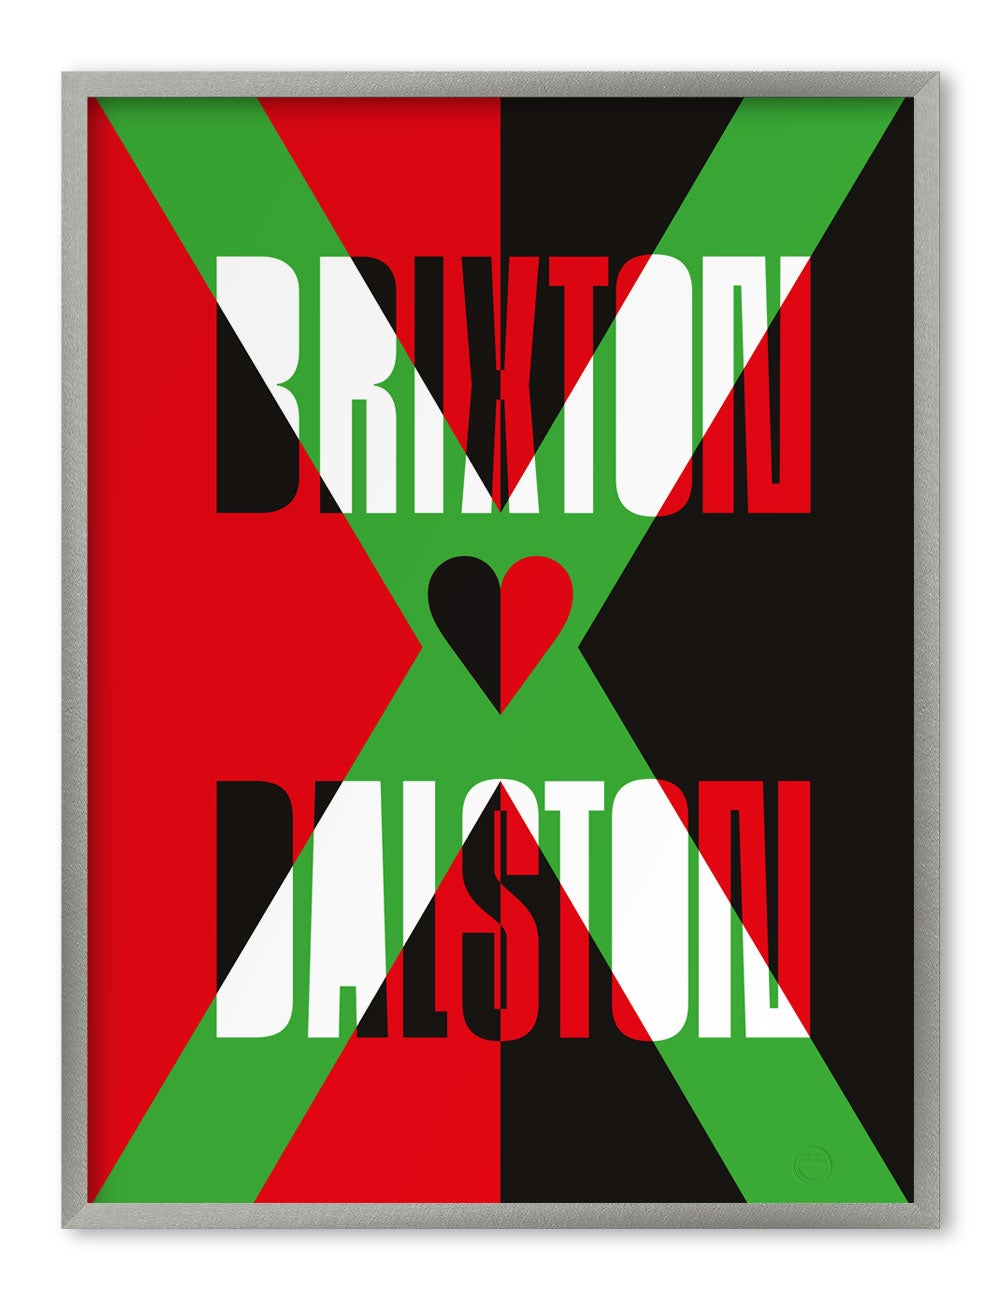 Image of BRIXTON ♥︎ DALSTON — A1 litho print, edition of 500